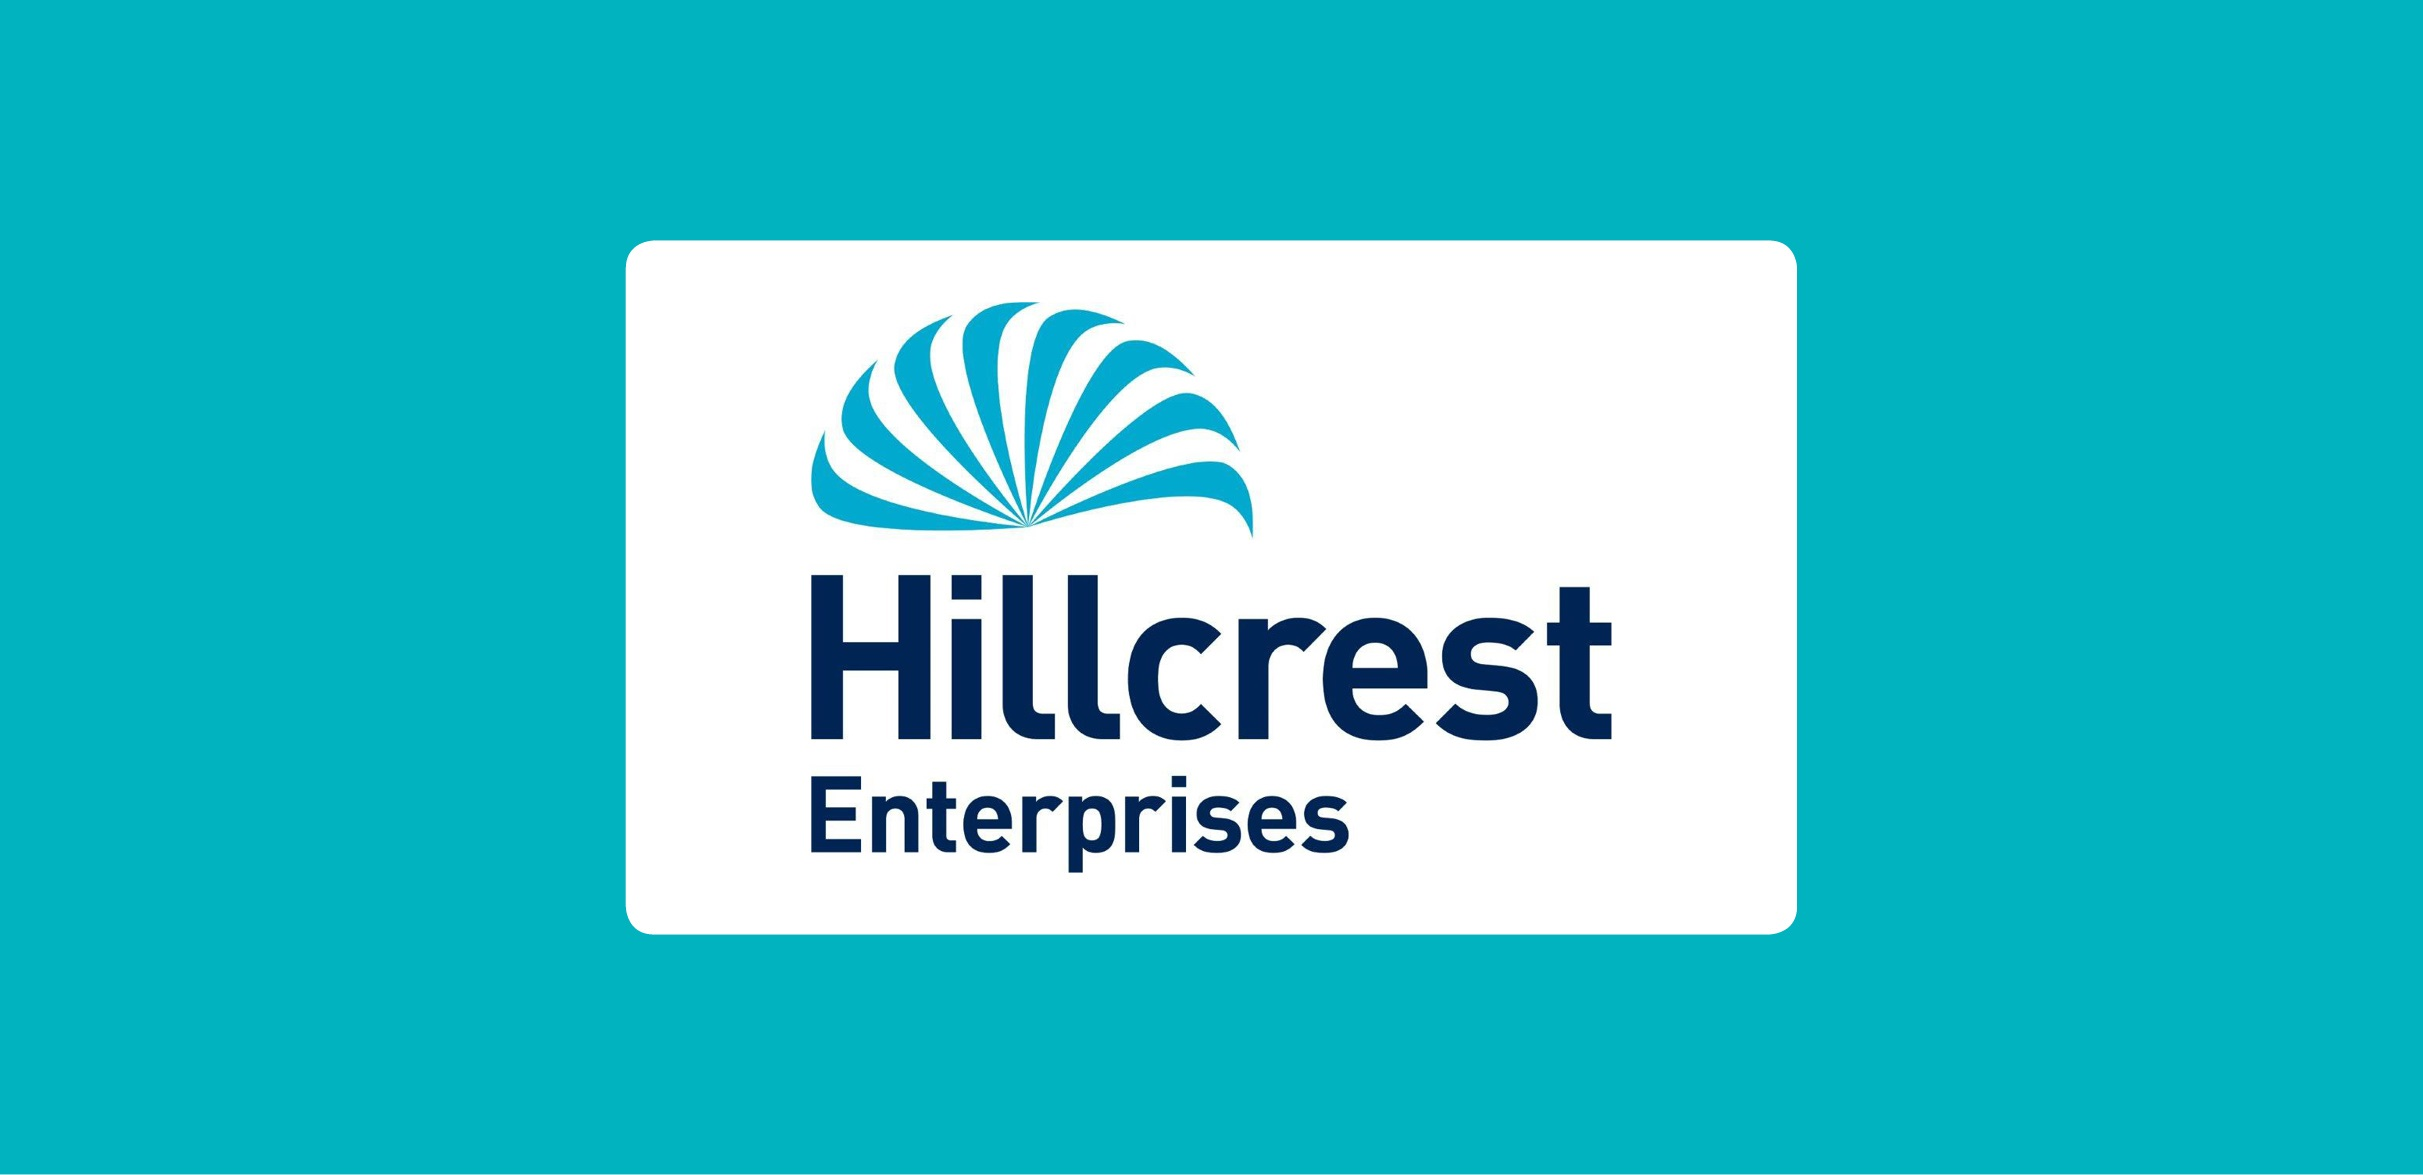 Hillcrest Enterprises